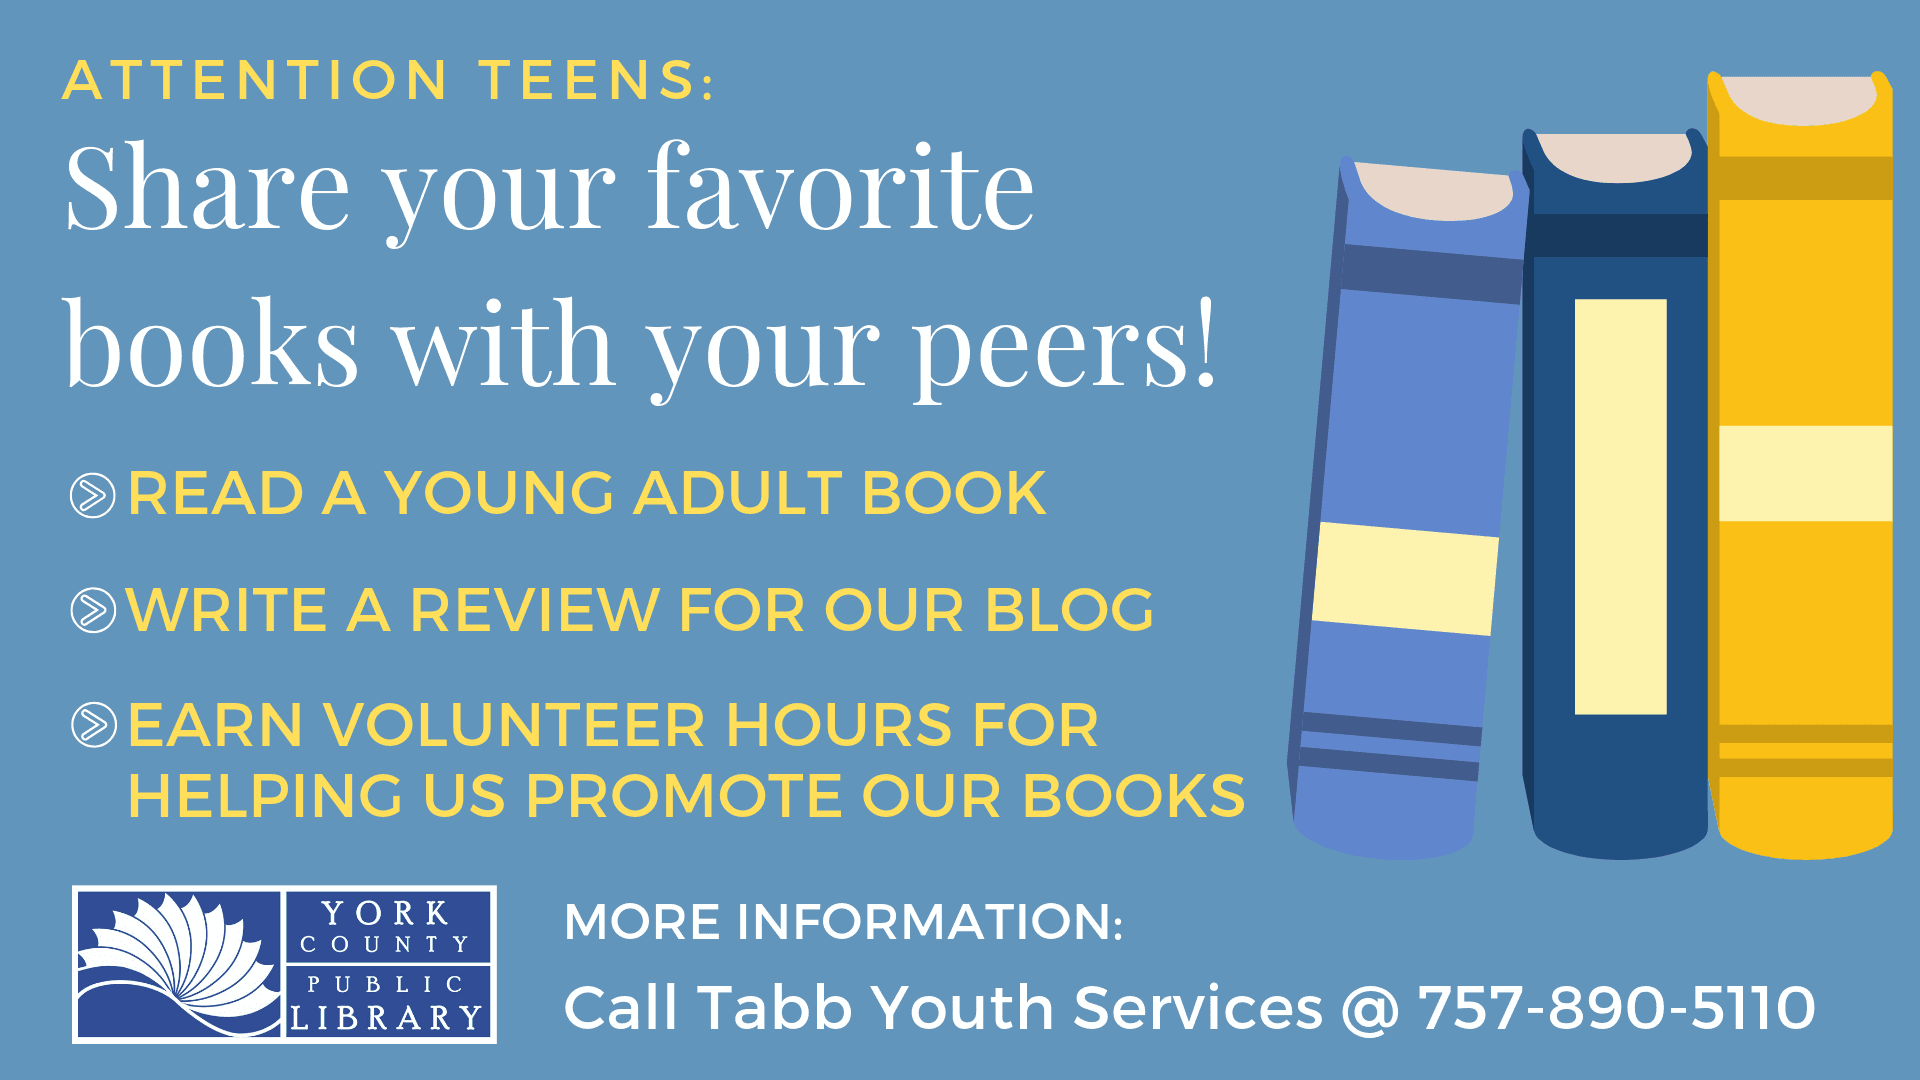 York County Public Library calls for teen book reviews for library blog.  Call 757-